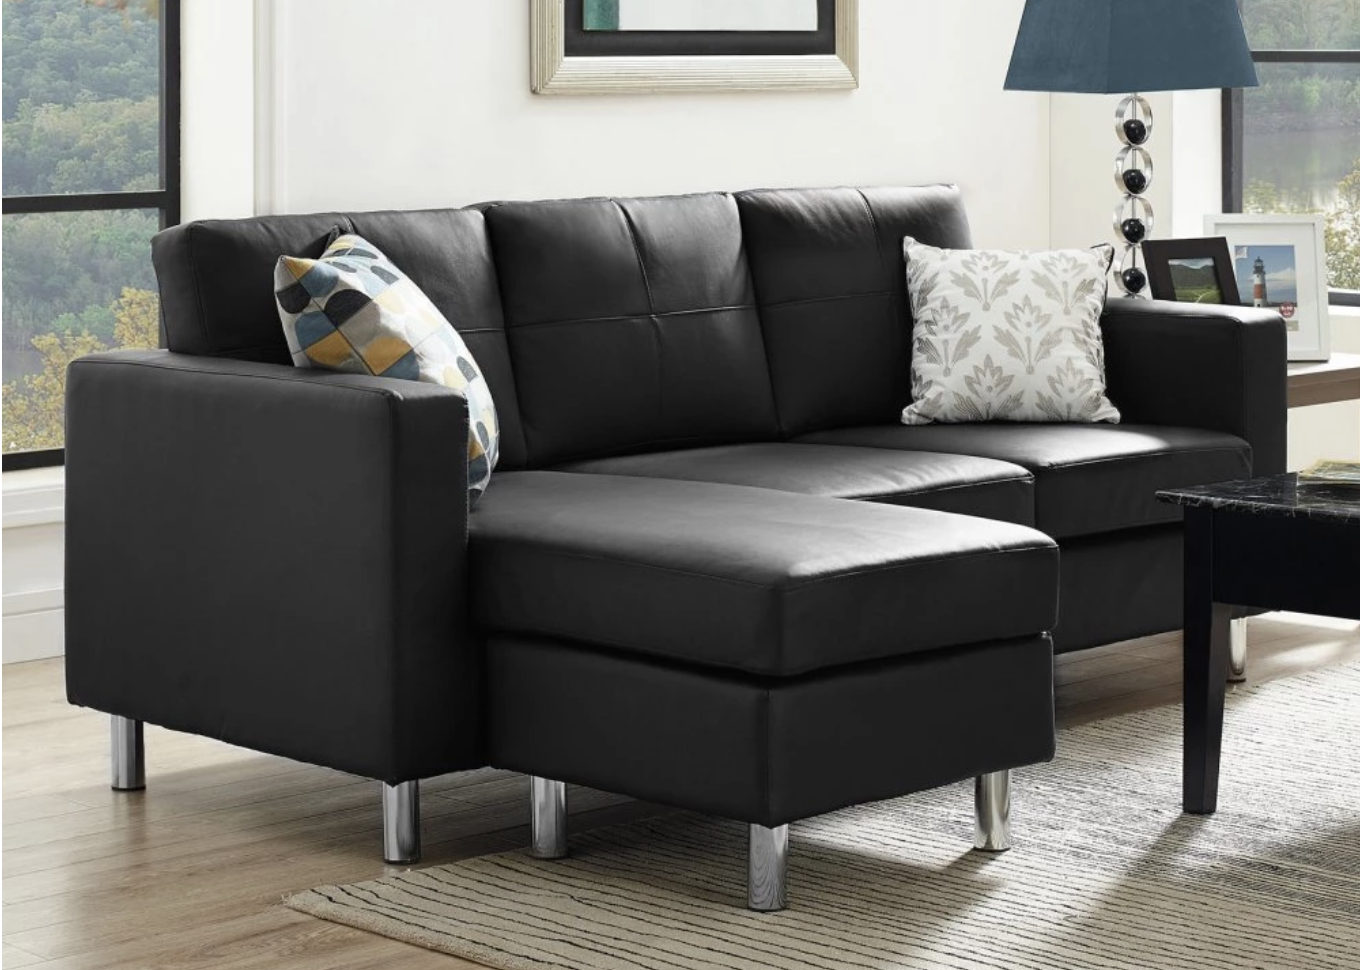 Space saving black sectional sofa for small spaces